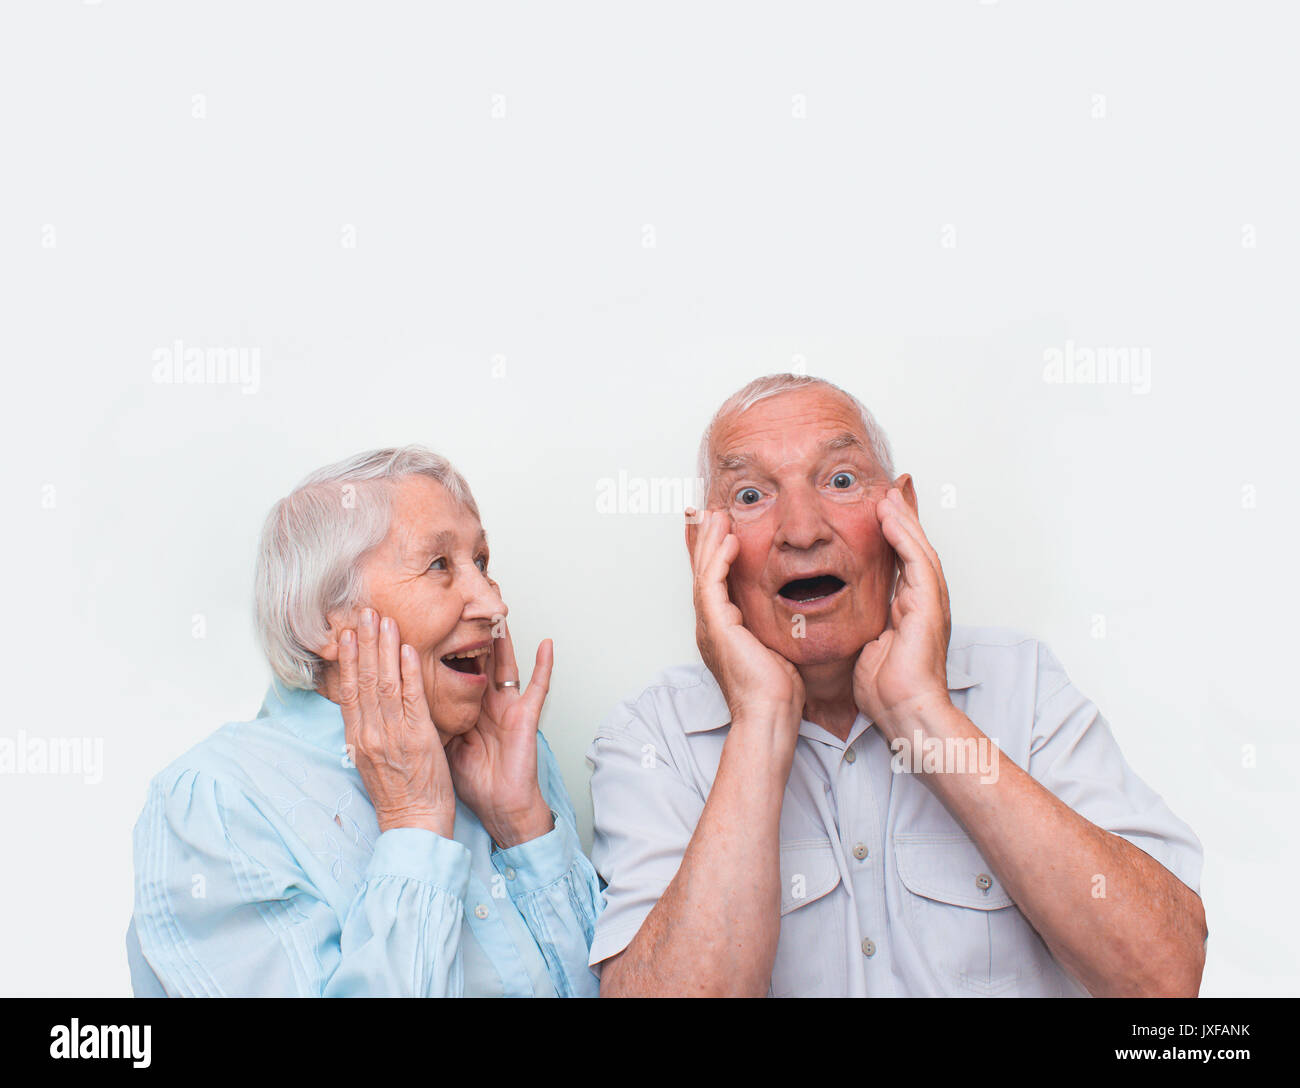 The elderly couple surprised by raising both hands - Stock Image